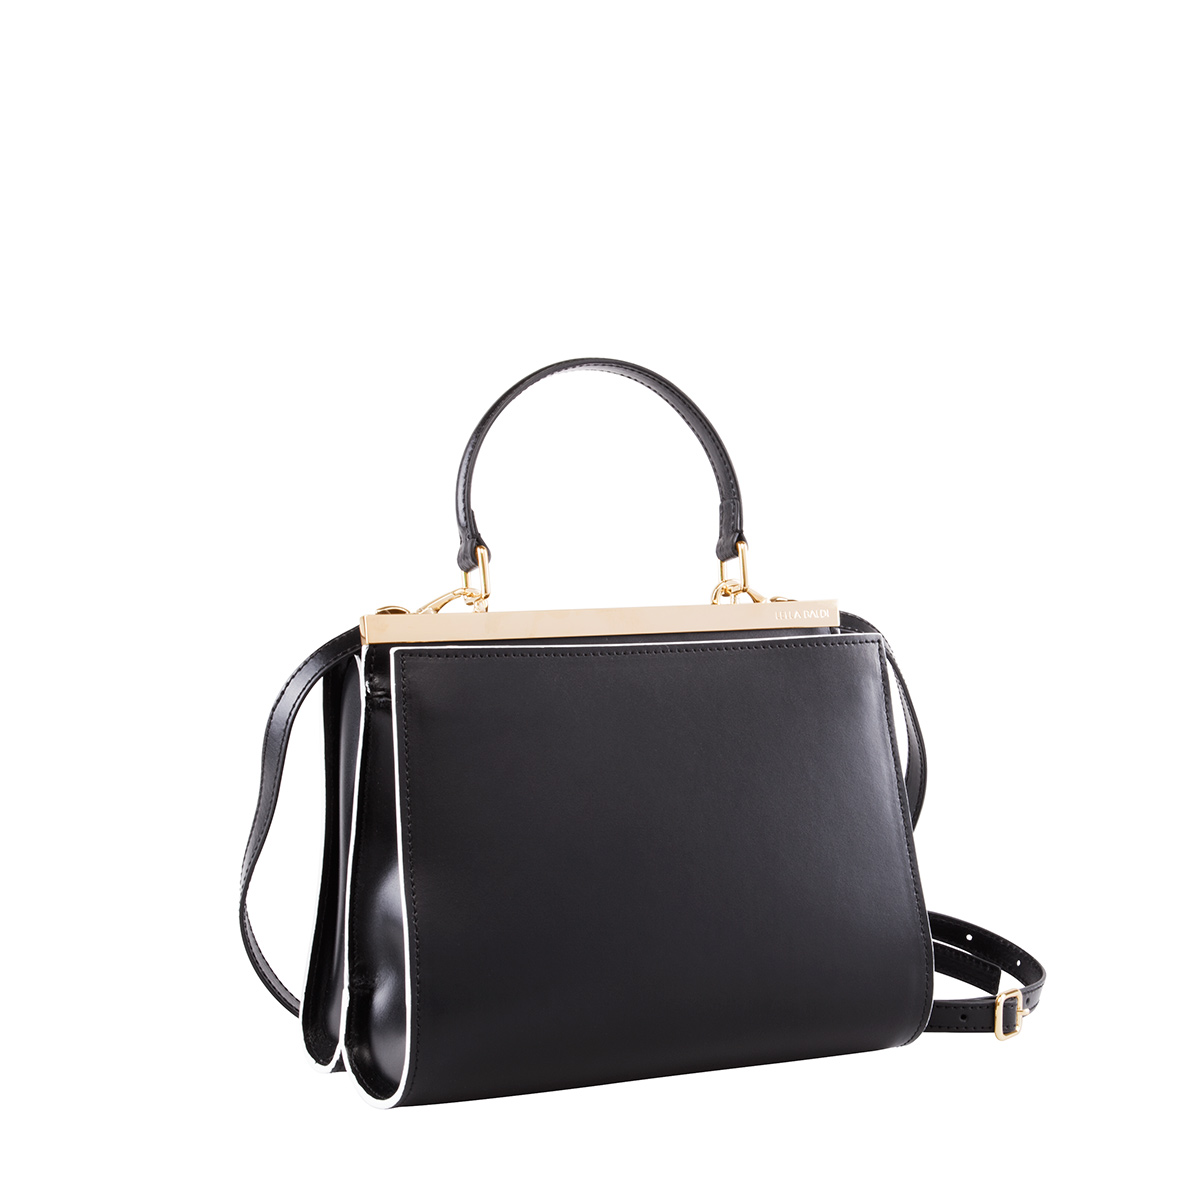 Wavy Bag Shoulder, Nero-Bianco